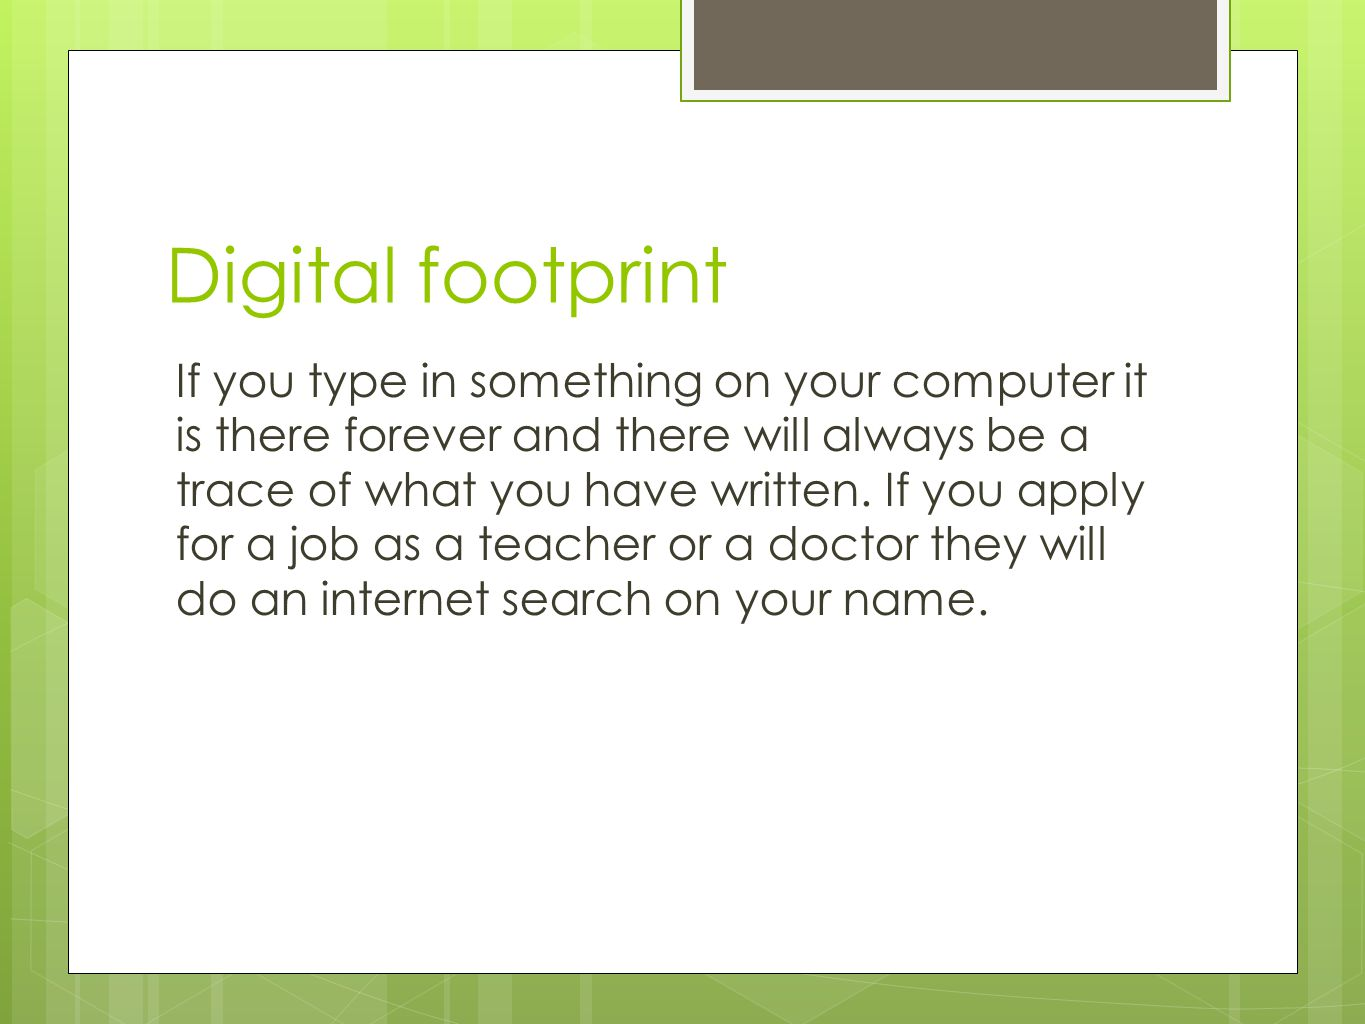 Digital footprint If you type in something on your computer it is there forever and there will always be a trace of what you have written. If you appl